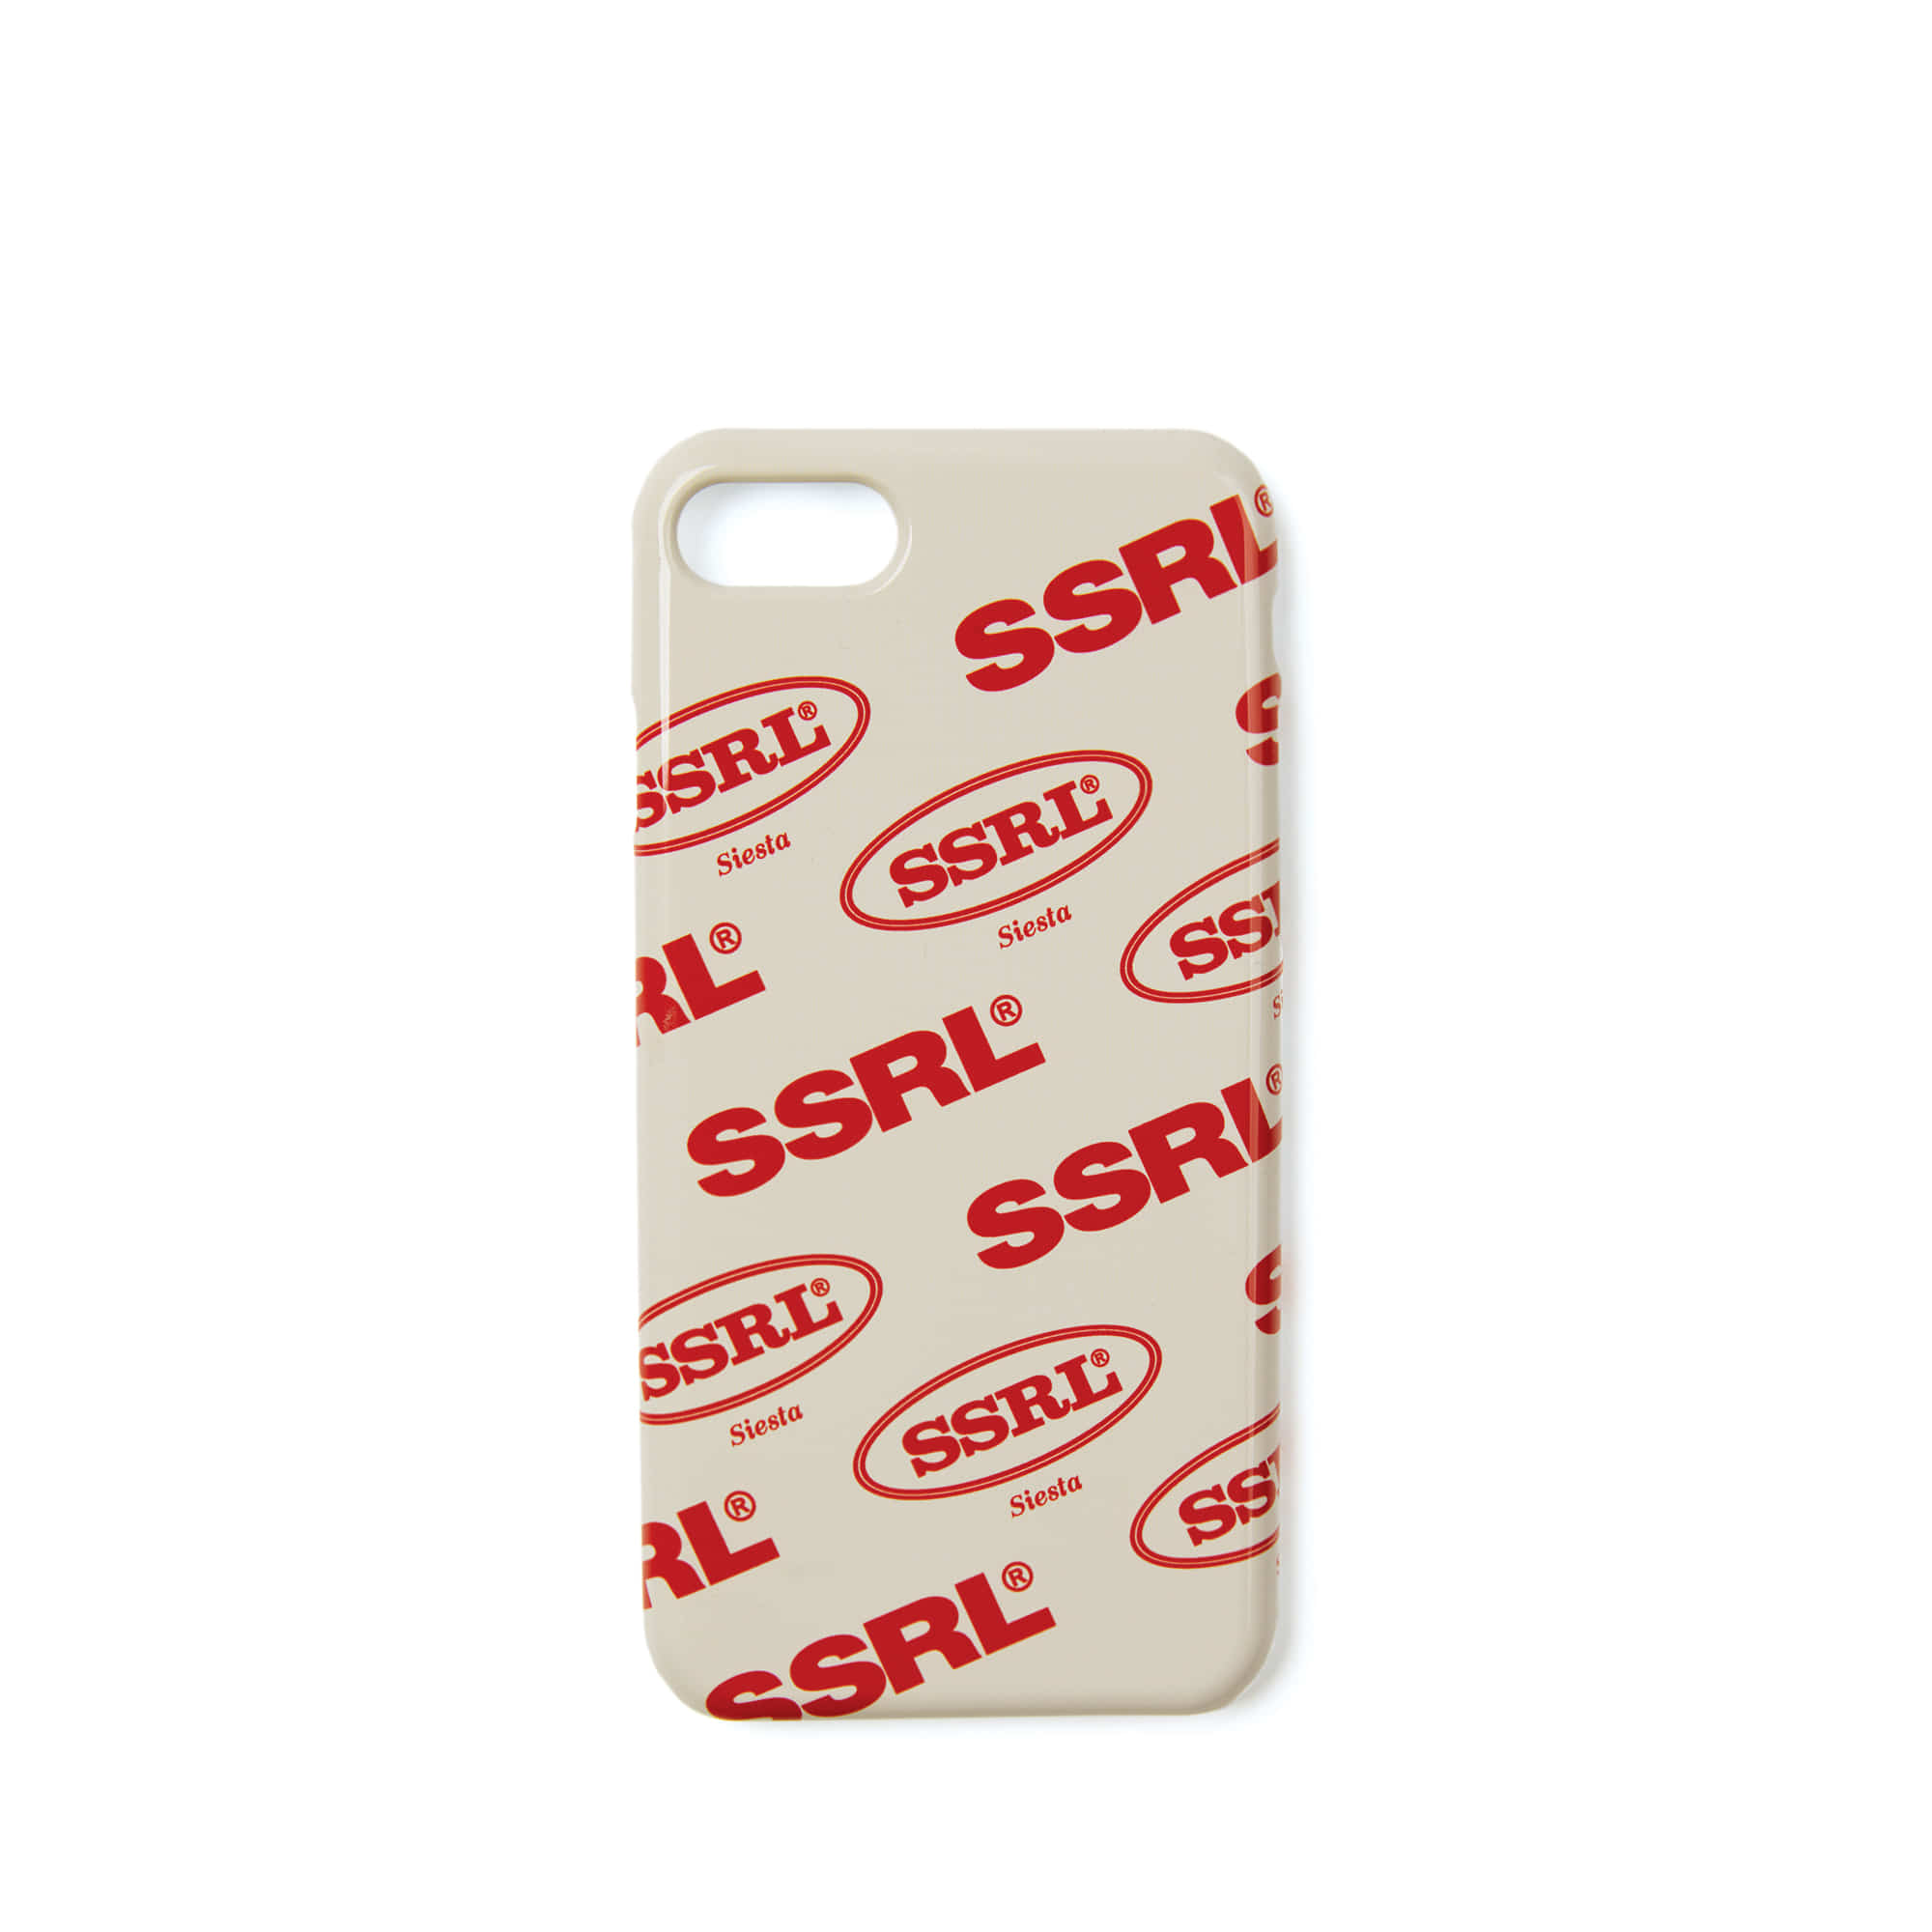 [주우재착용]mix logo hard case / grain